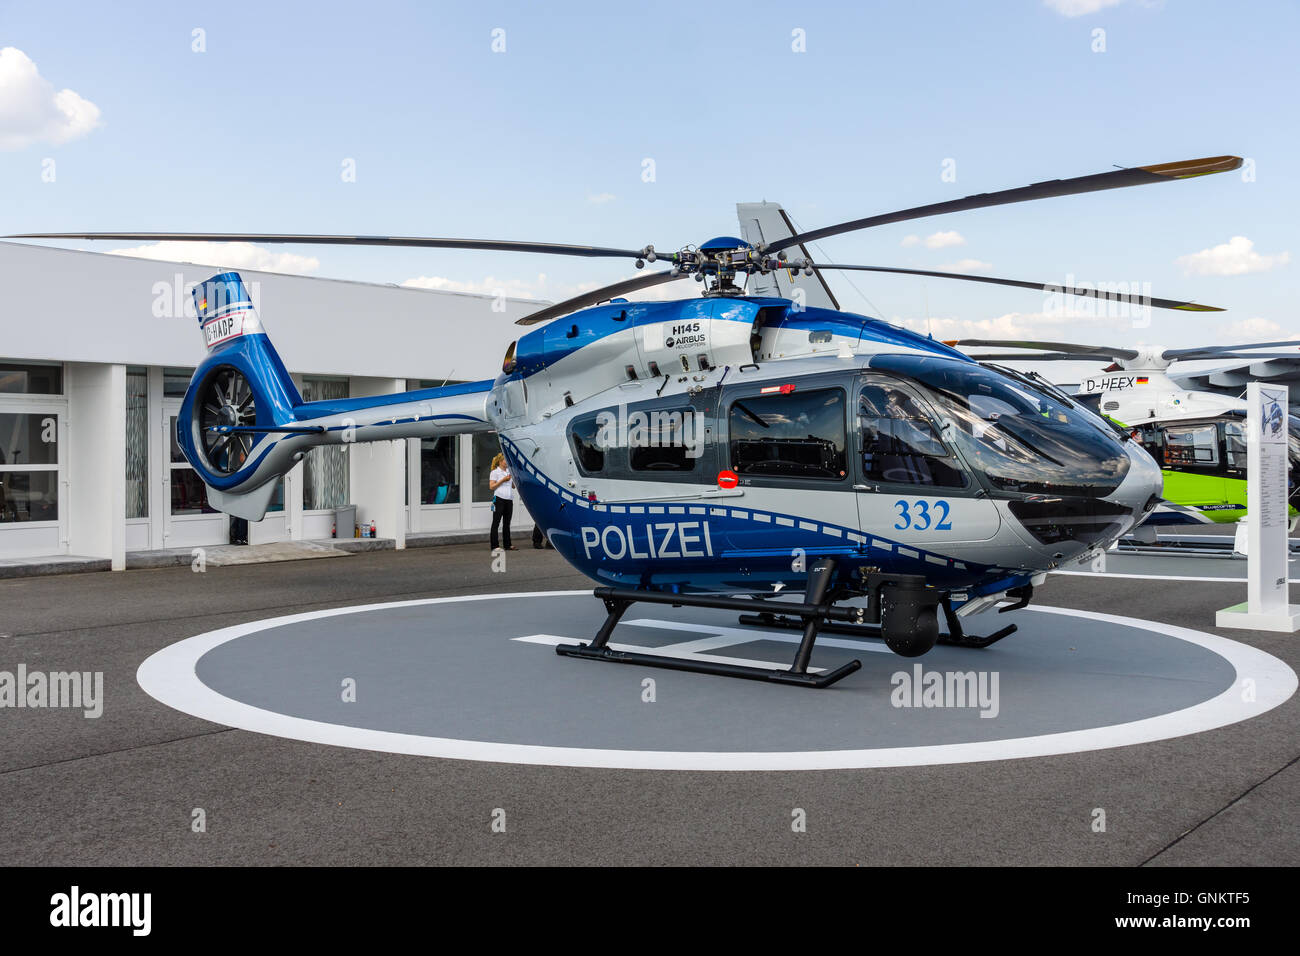 Medium utility helicopter Airbus Helicopters H145 of the German State Police. - Stock Image